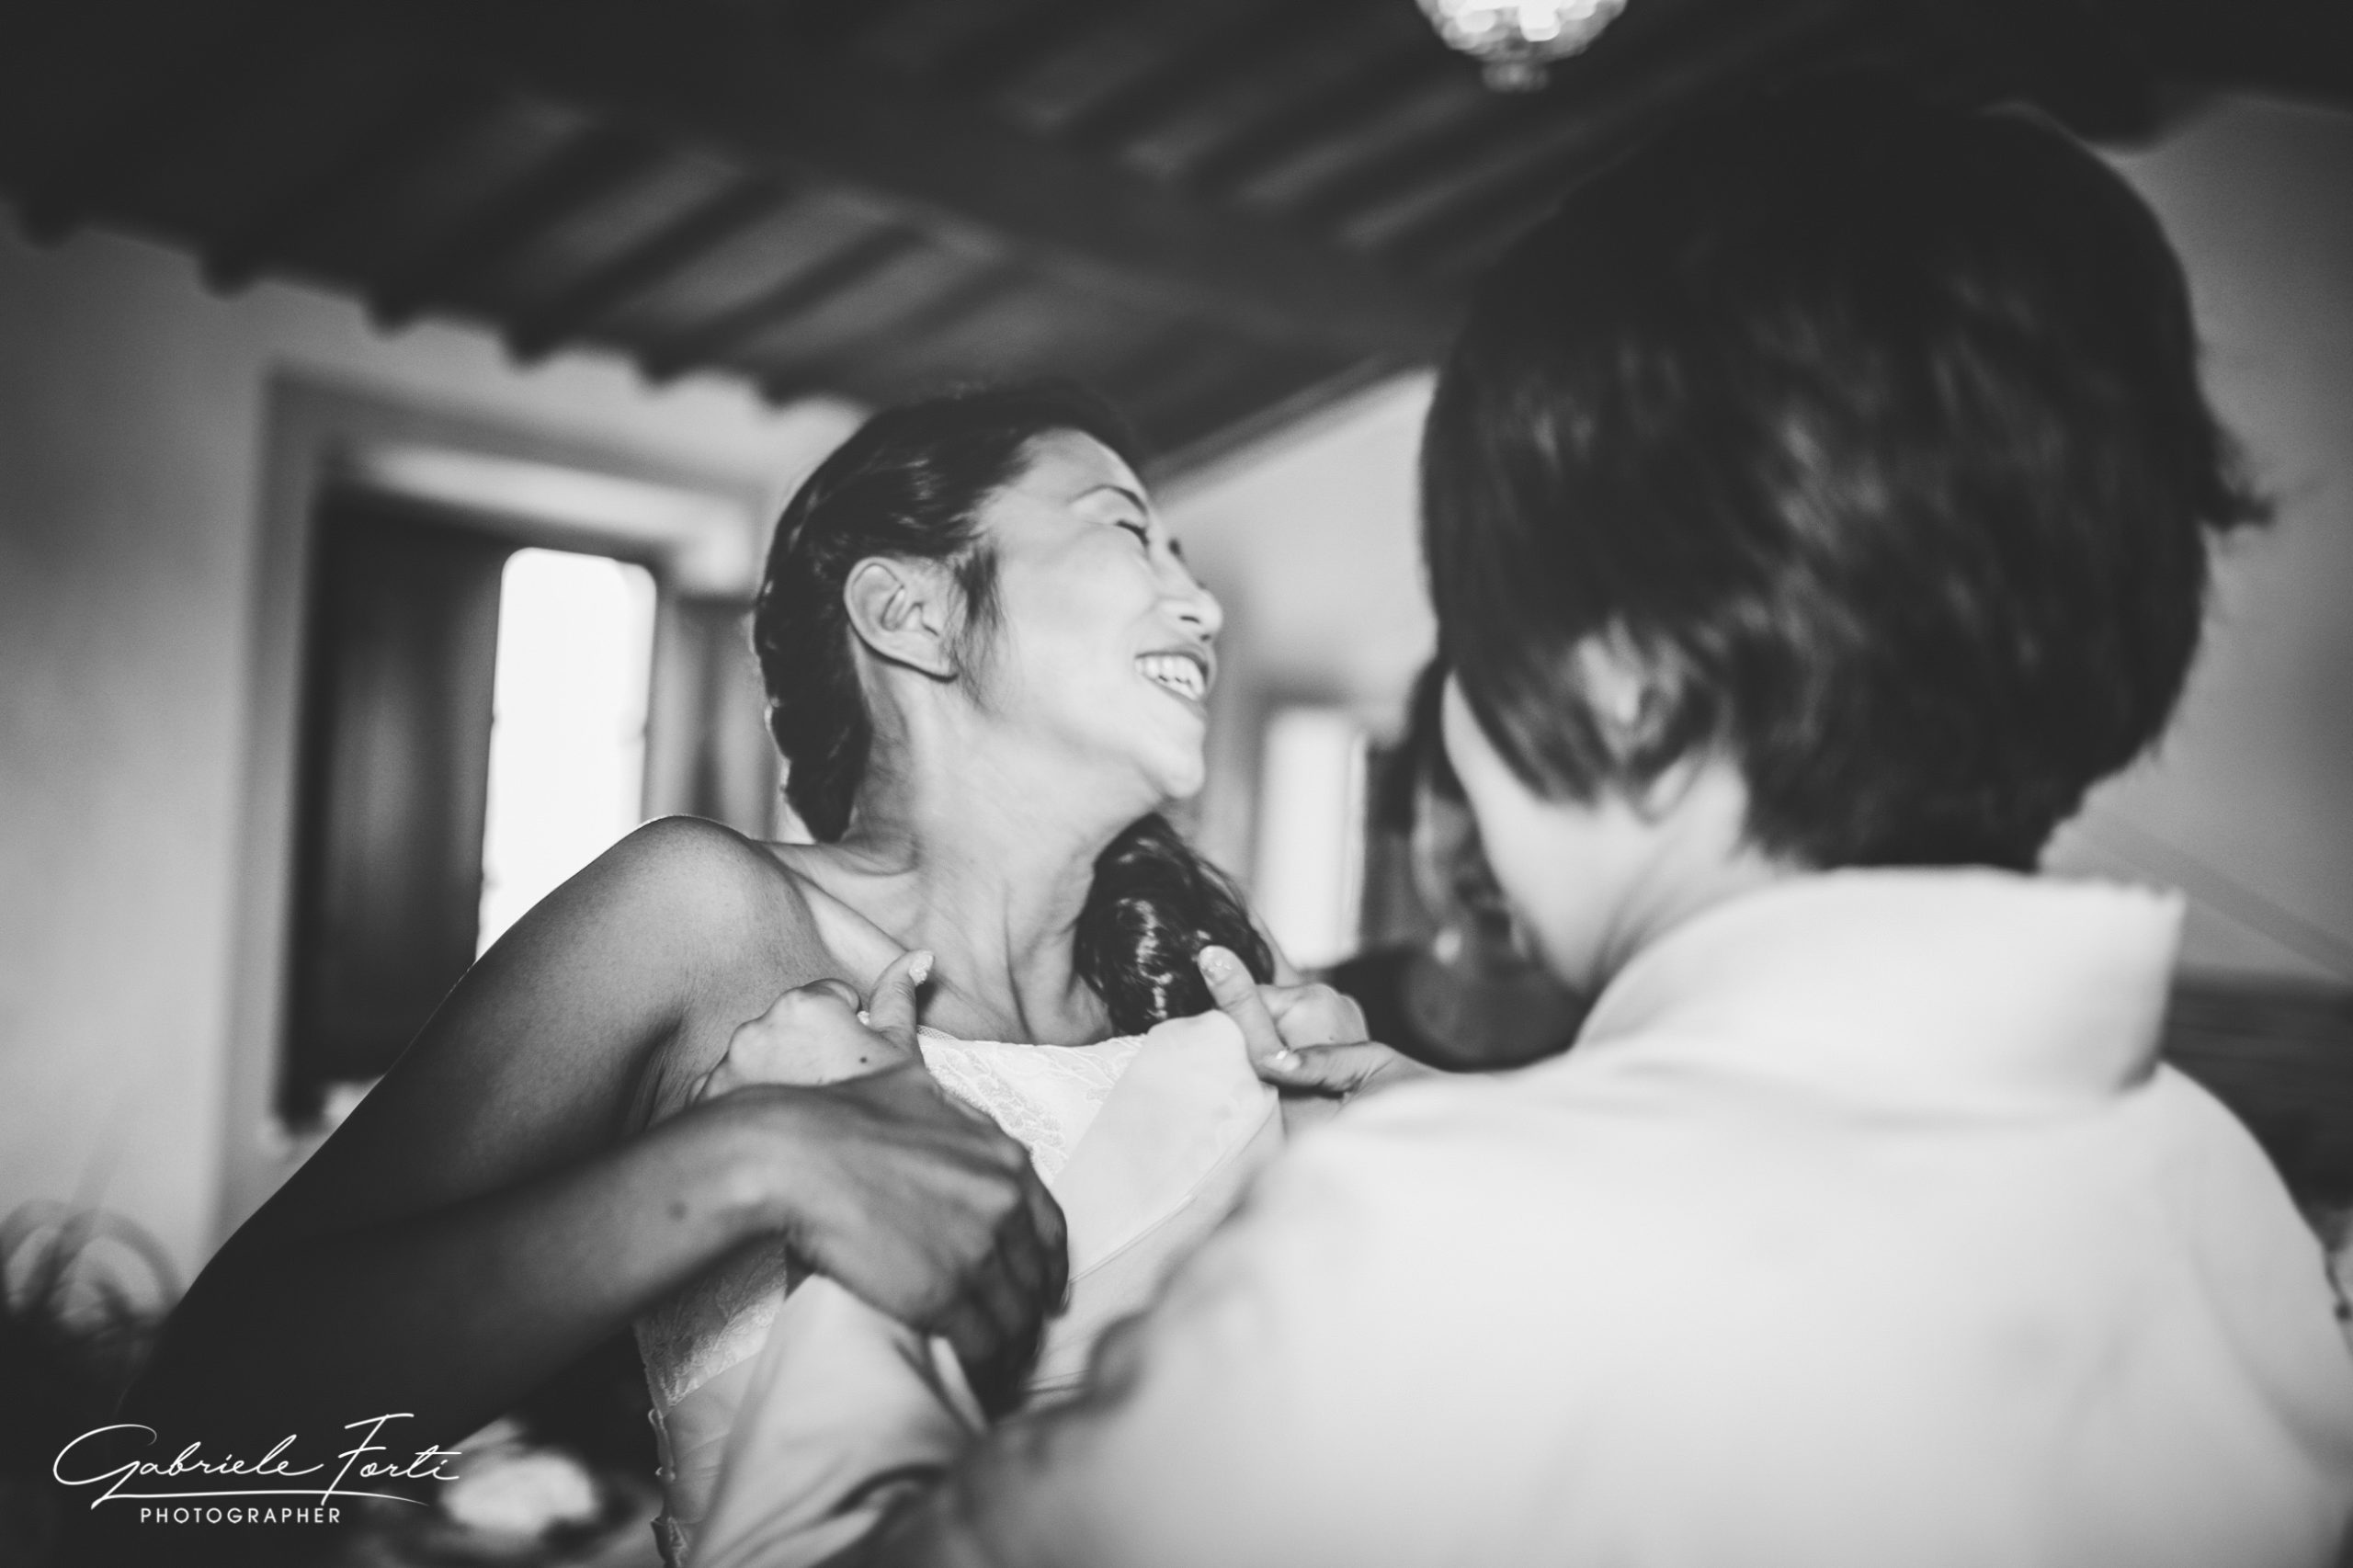 wedding-japan-tuscany-locanda-in-tuscany-photographer-siena-foto-forti-gabriele-6